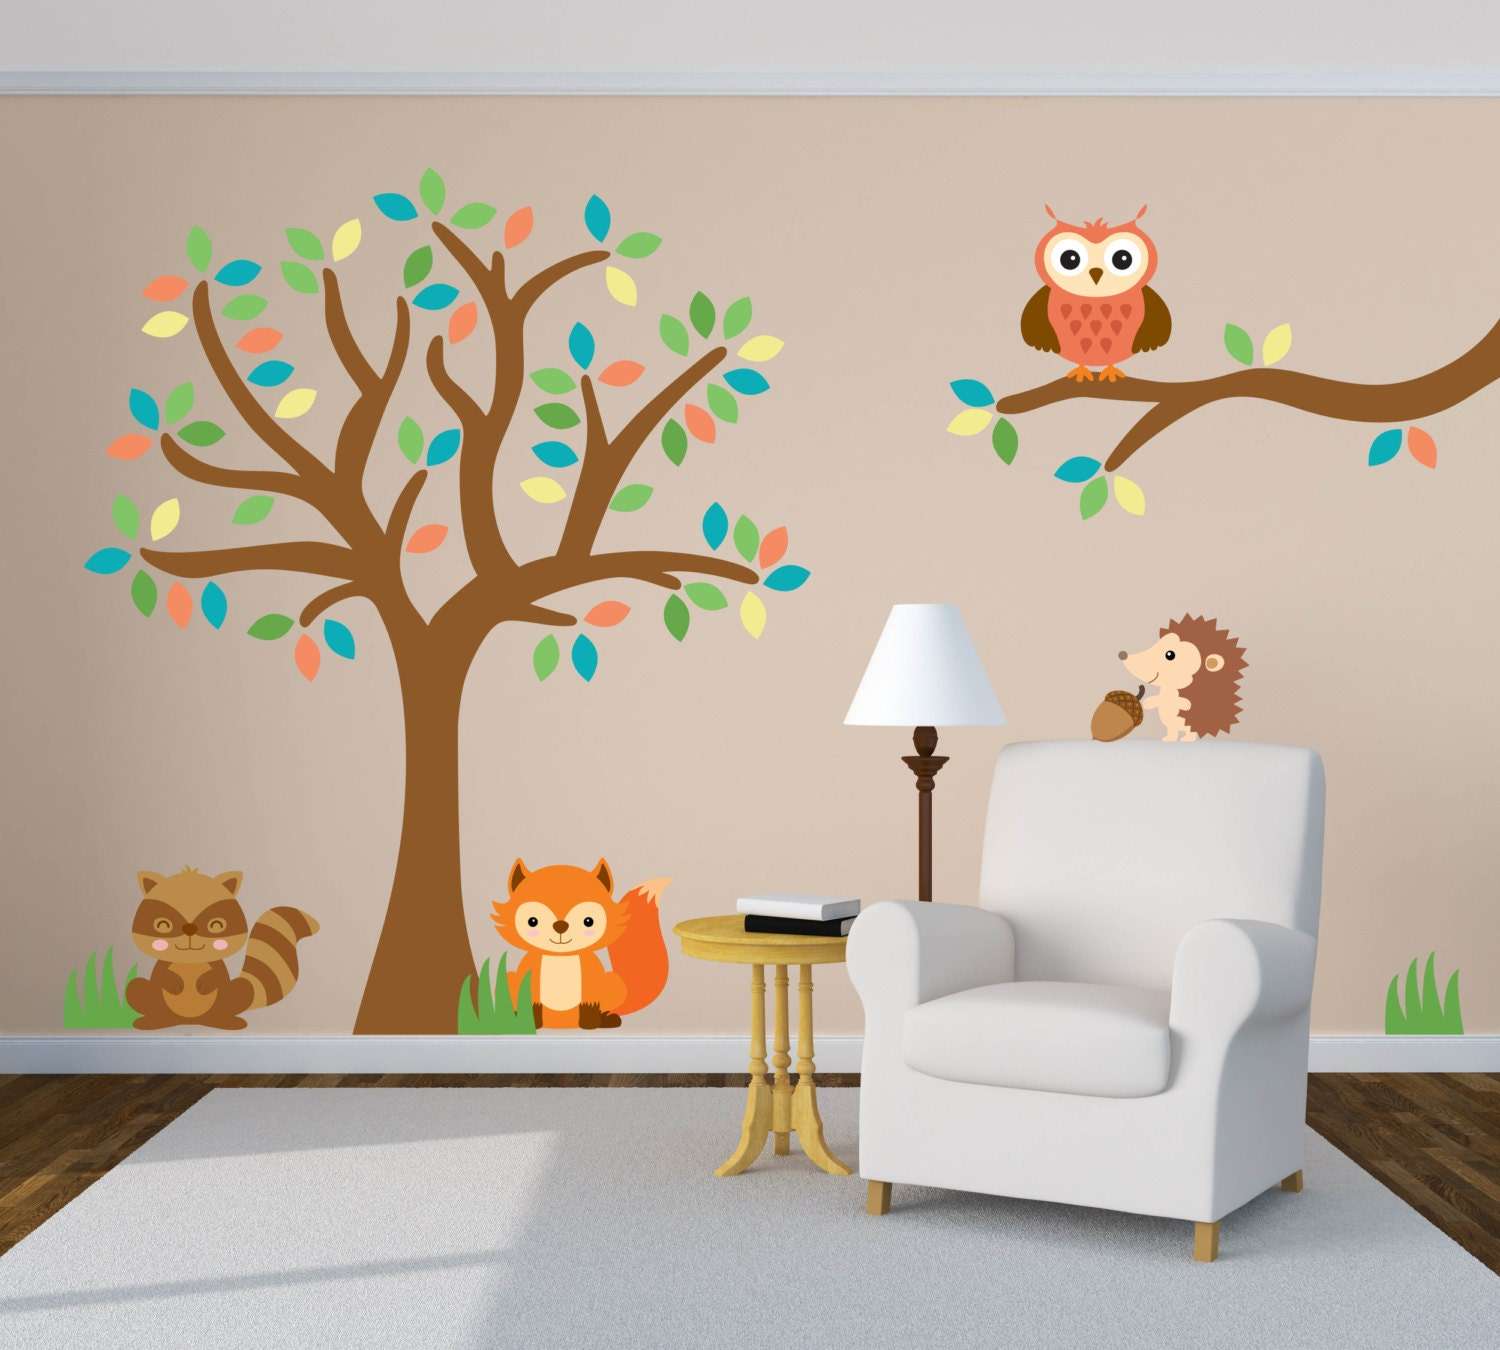 tree wall decal animal wall decal forest wall decal. Black Bedroom Furniture Sets. Home Design Ideas